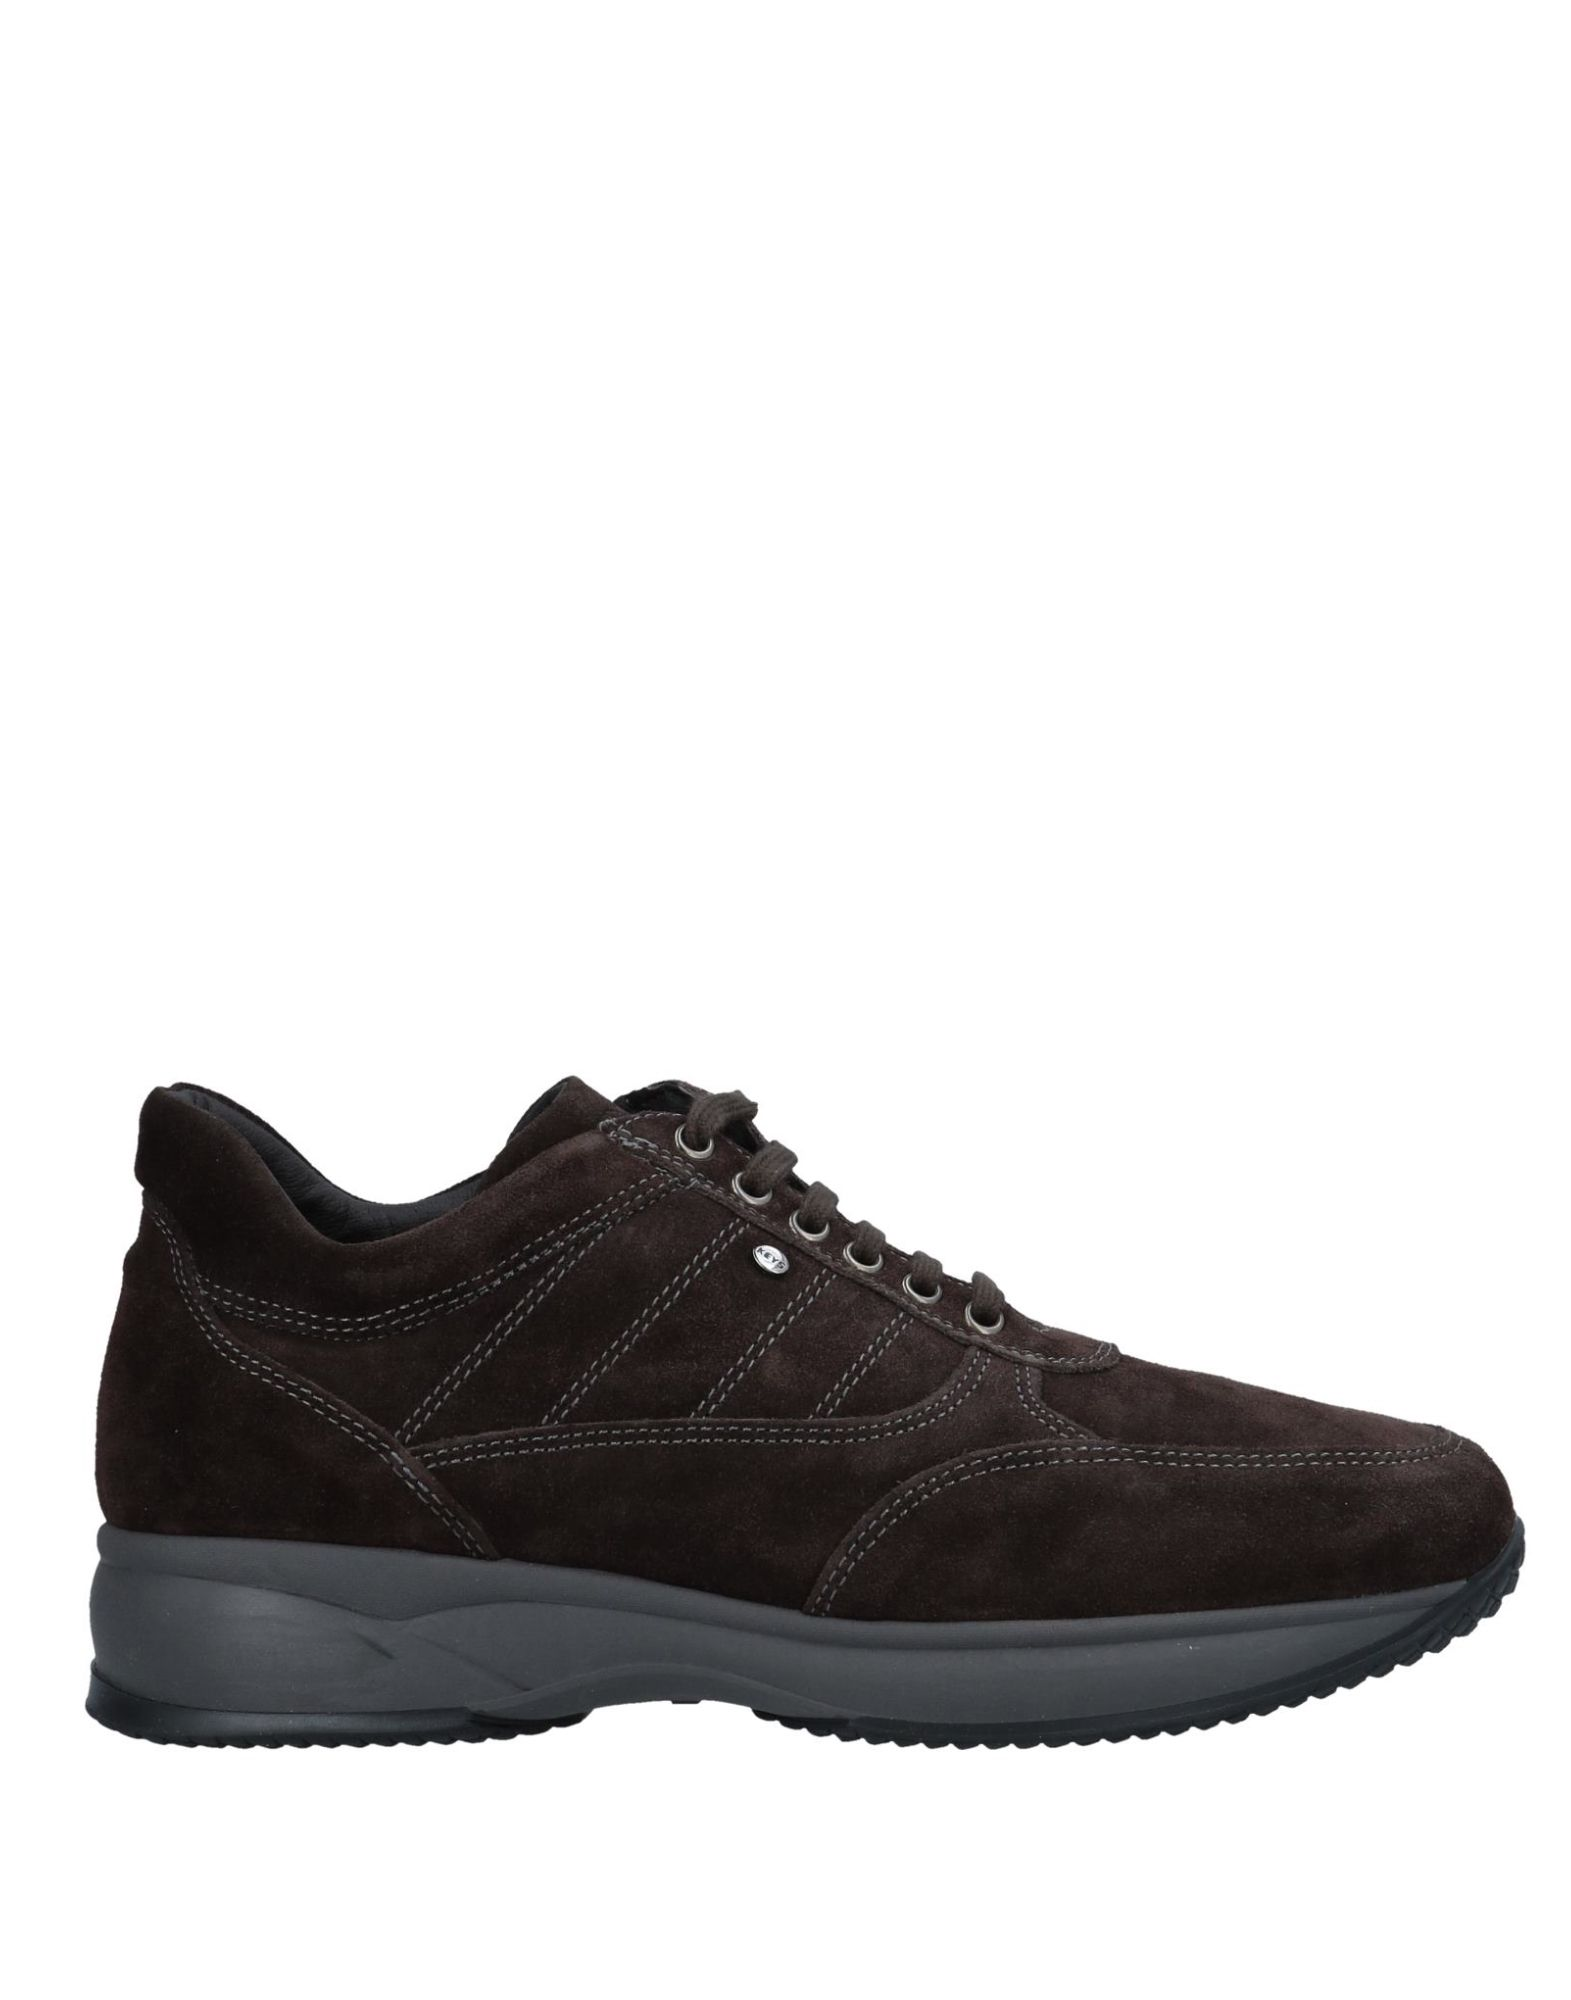 Keys Sneakers - Men Keys Sneakers online 11549989OI on  Australia - 11549989OI online 49fc07